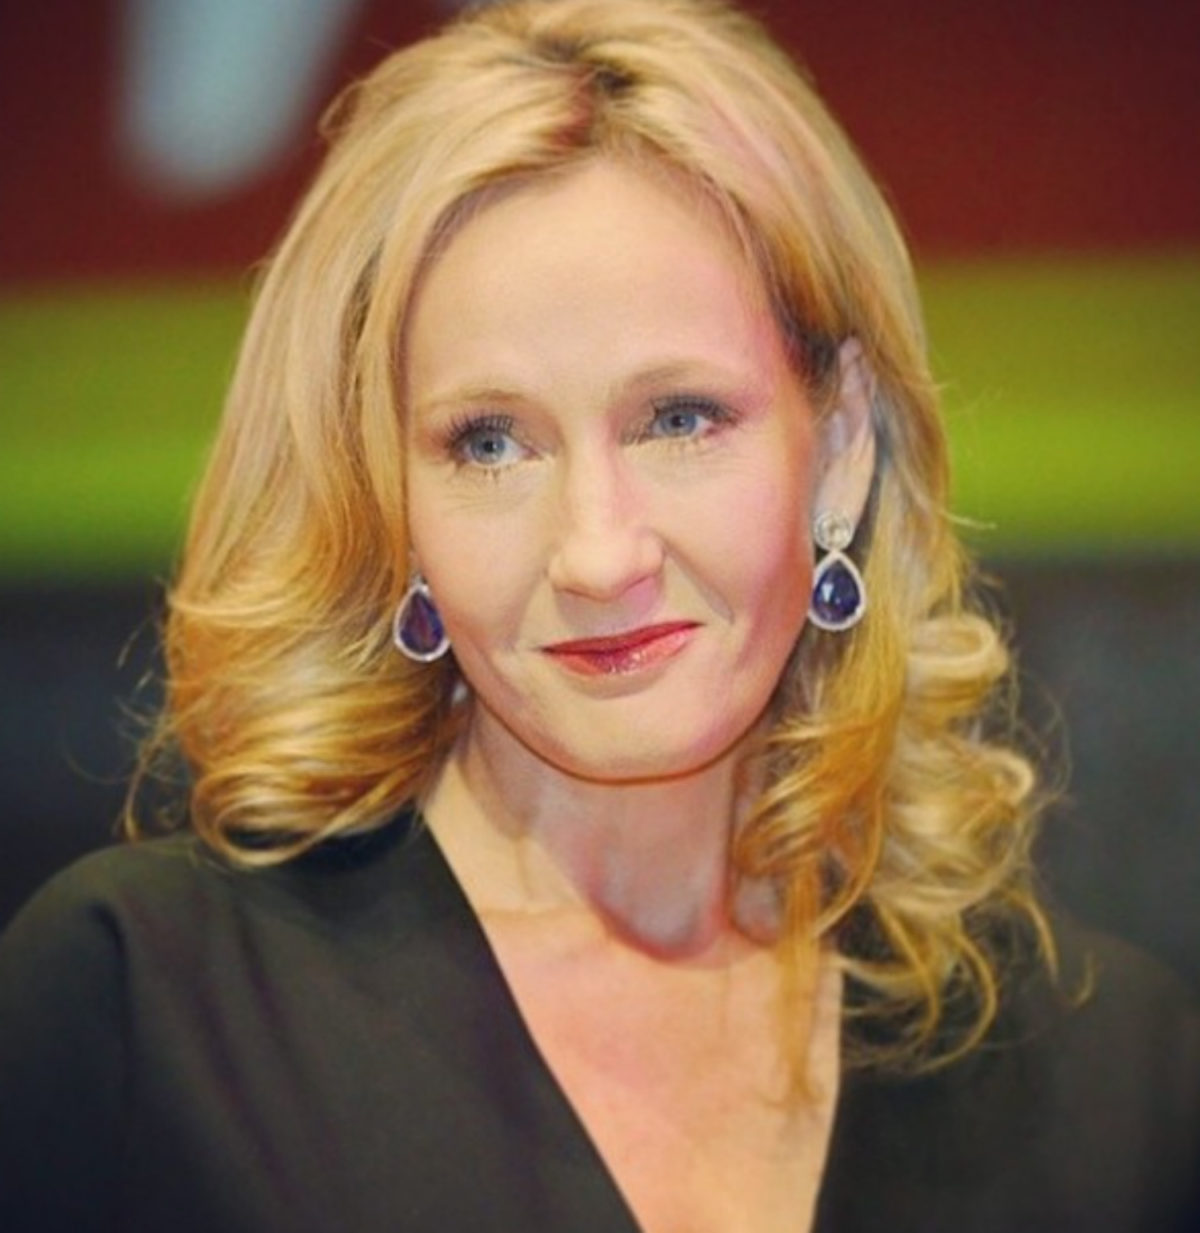 J.K. ROWLING GLORIOUSLY SHUTS DOWN SEXISTS VIA TWITTER